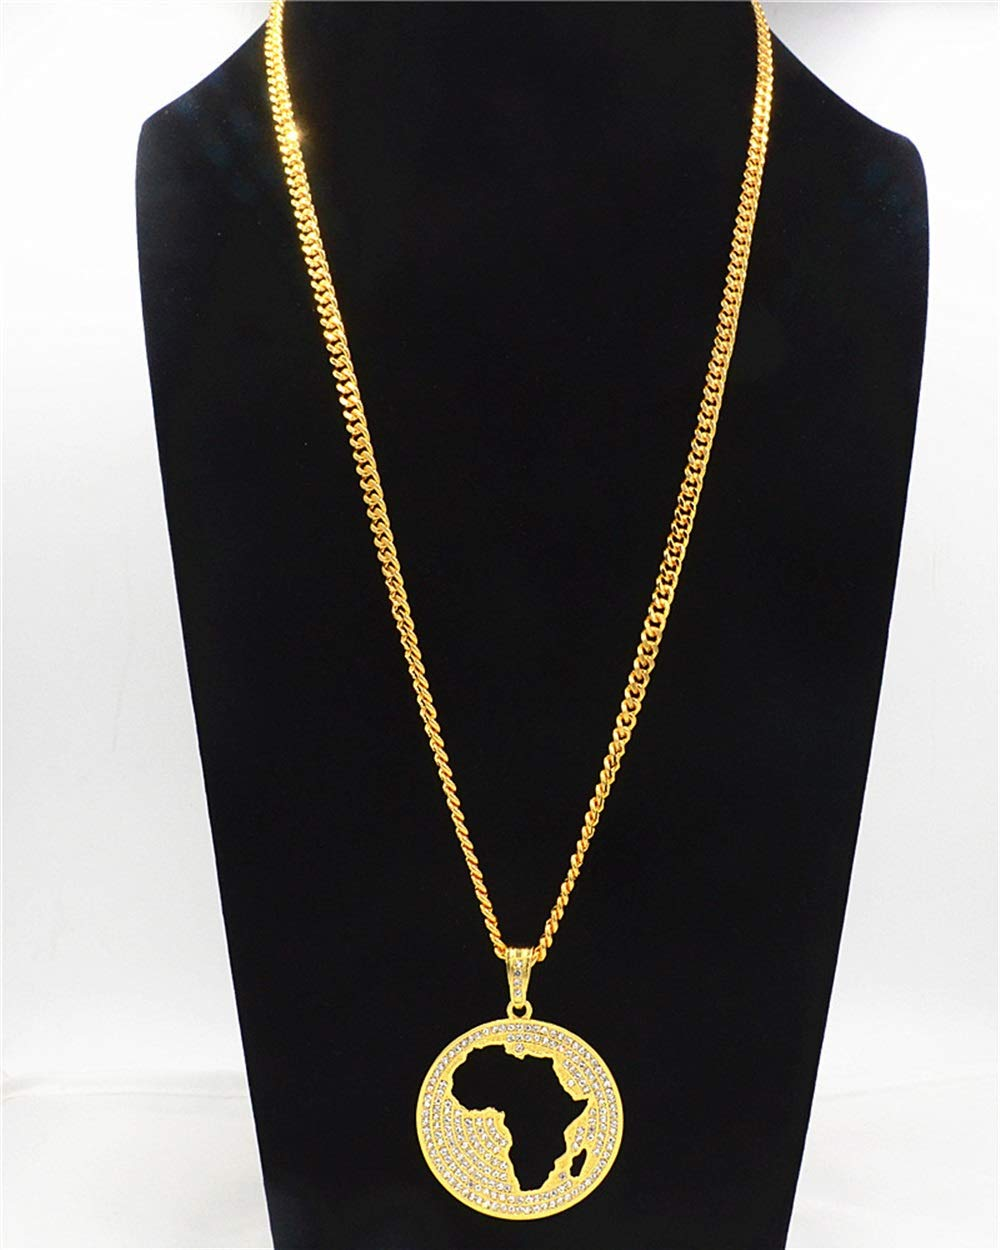 Visic Elegant Necklace Creative Hollow Africa Map Pendant Hiphop Necklace